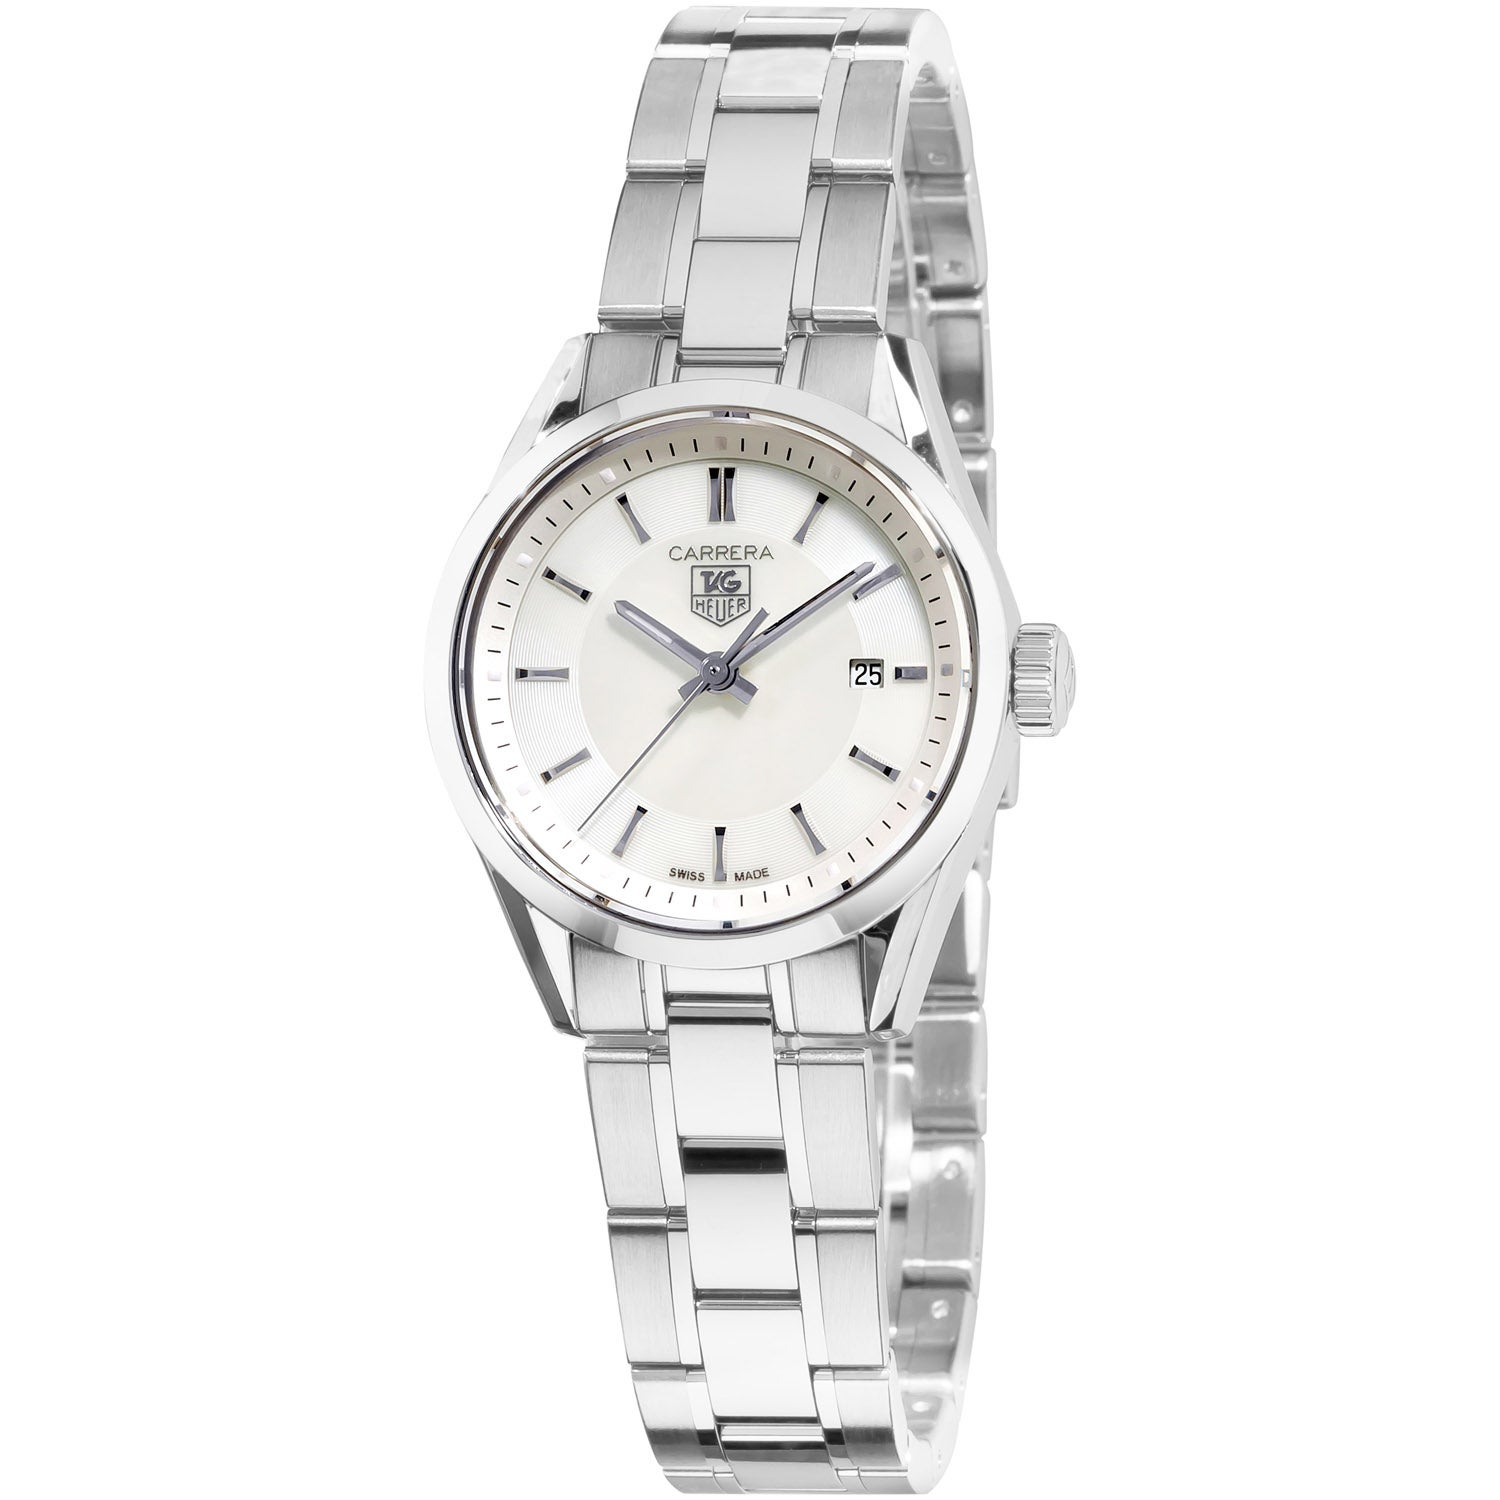 Tag heuer women 39 s wv1415 ba0793 39 carrera 39 mother of pearl dial stainless steel watch free for Tag heuer women